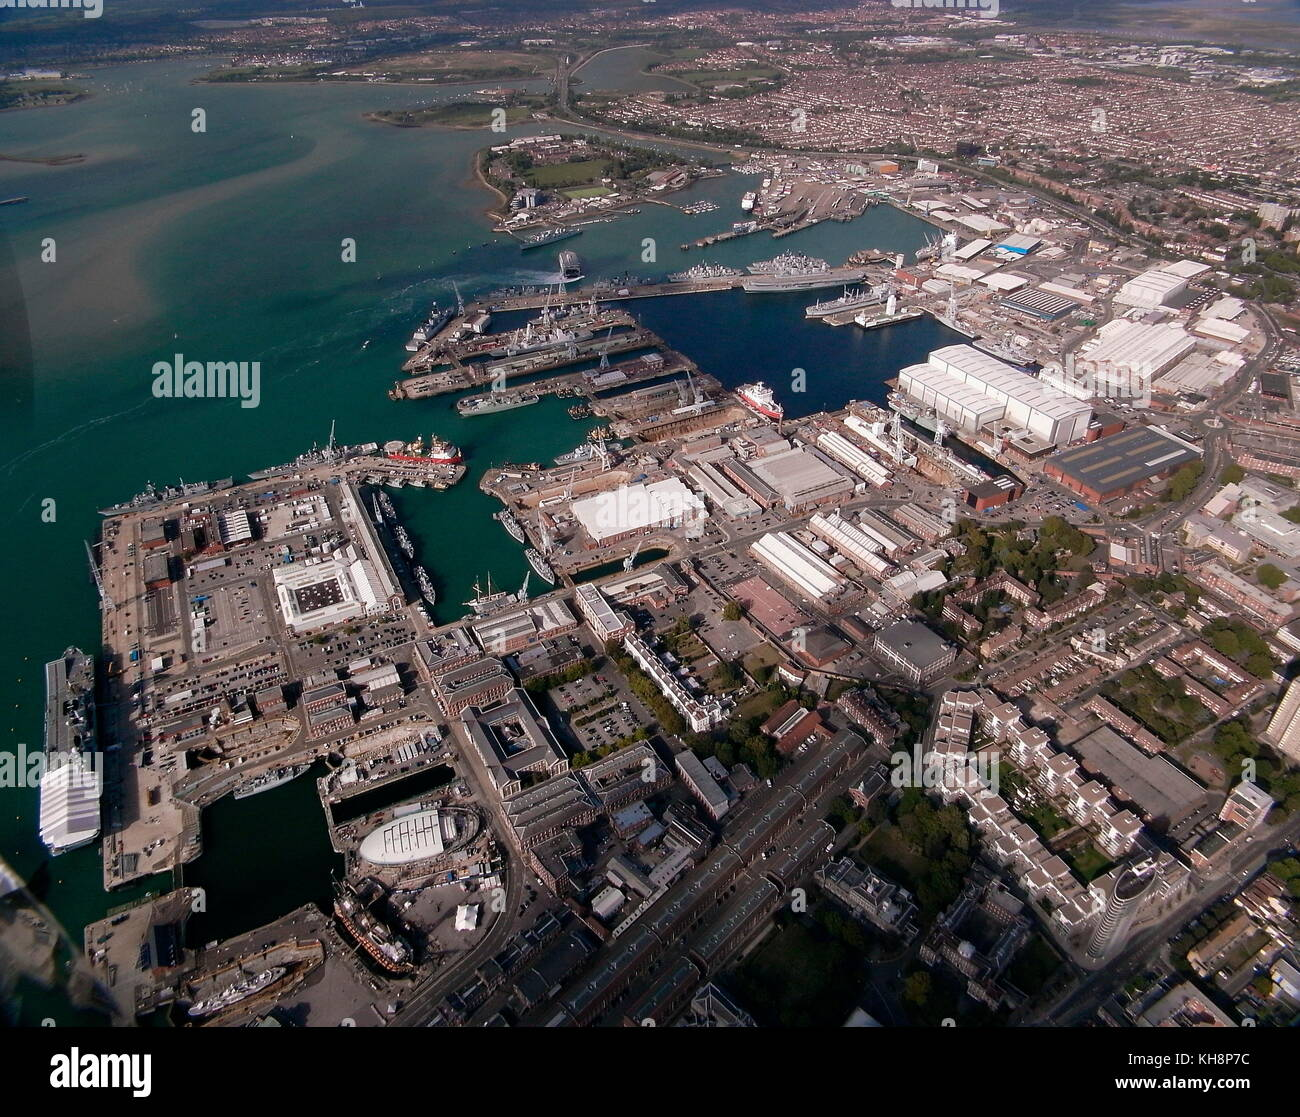 AJAXNETPHOTO.24TH AUGUST, 2011. PORTSMOUTH, ENGLAND. - BIRD'S EYE VIEW - THE CITY'S SPRAWLING NAVAL BASE, - Stock Image